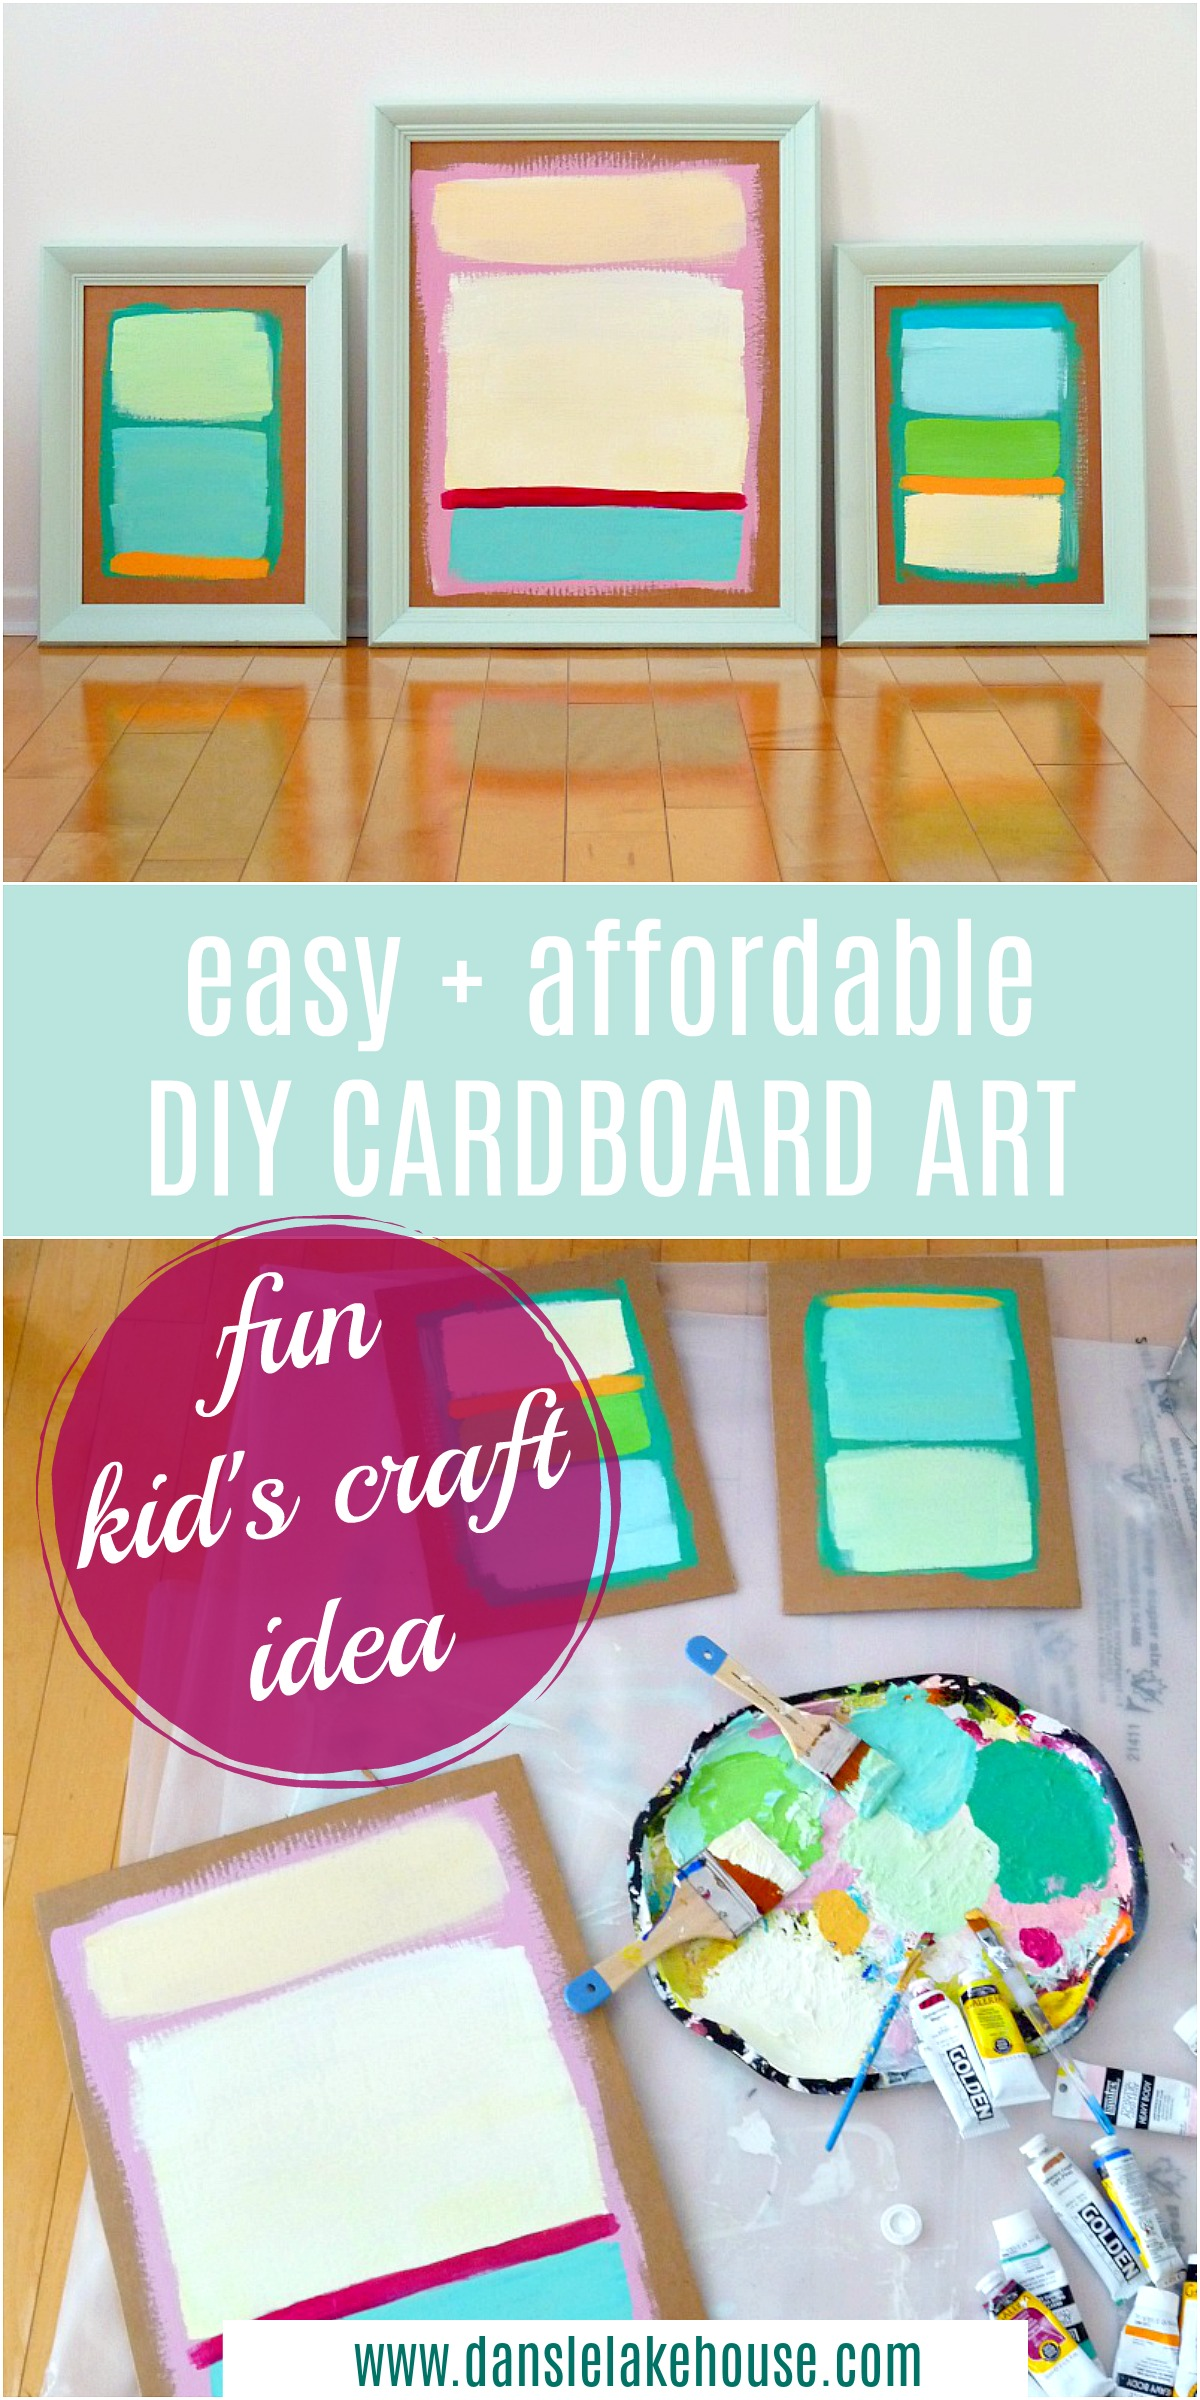 DIY cardboard art project for kids